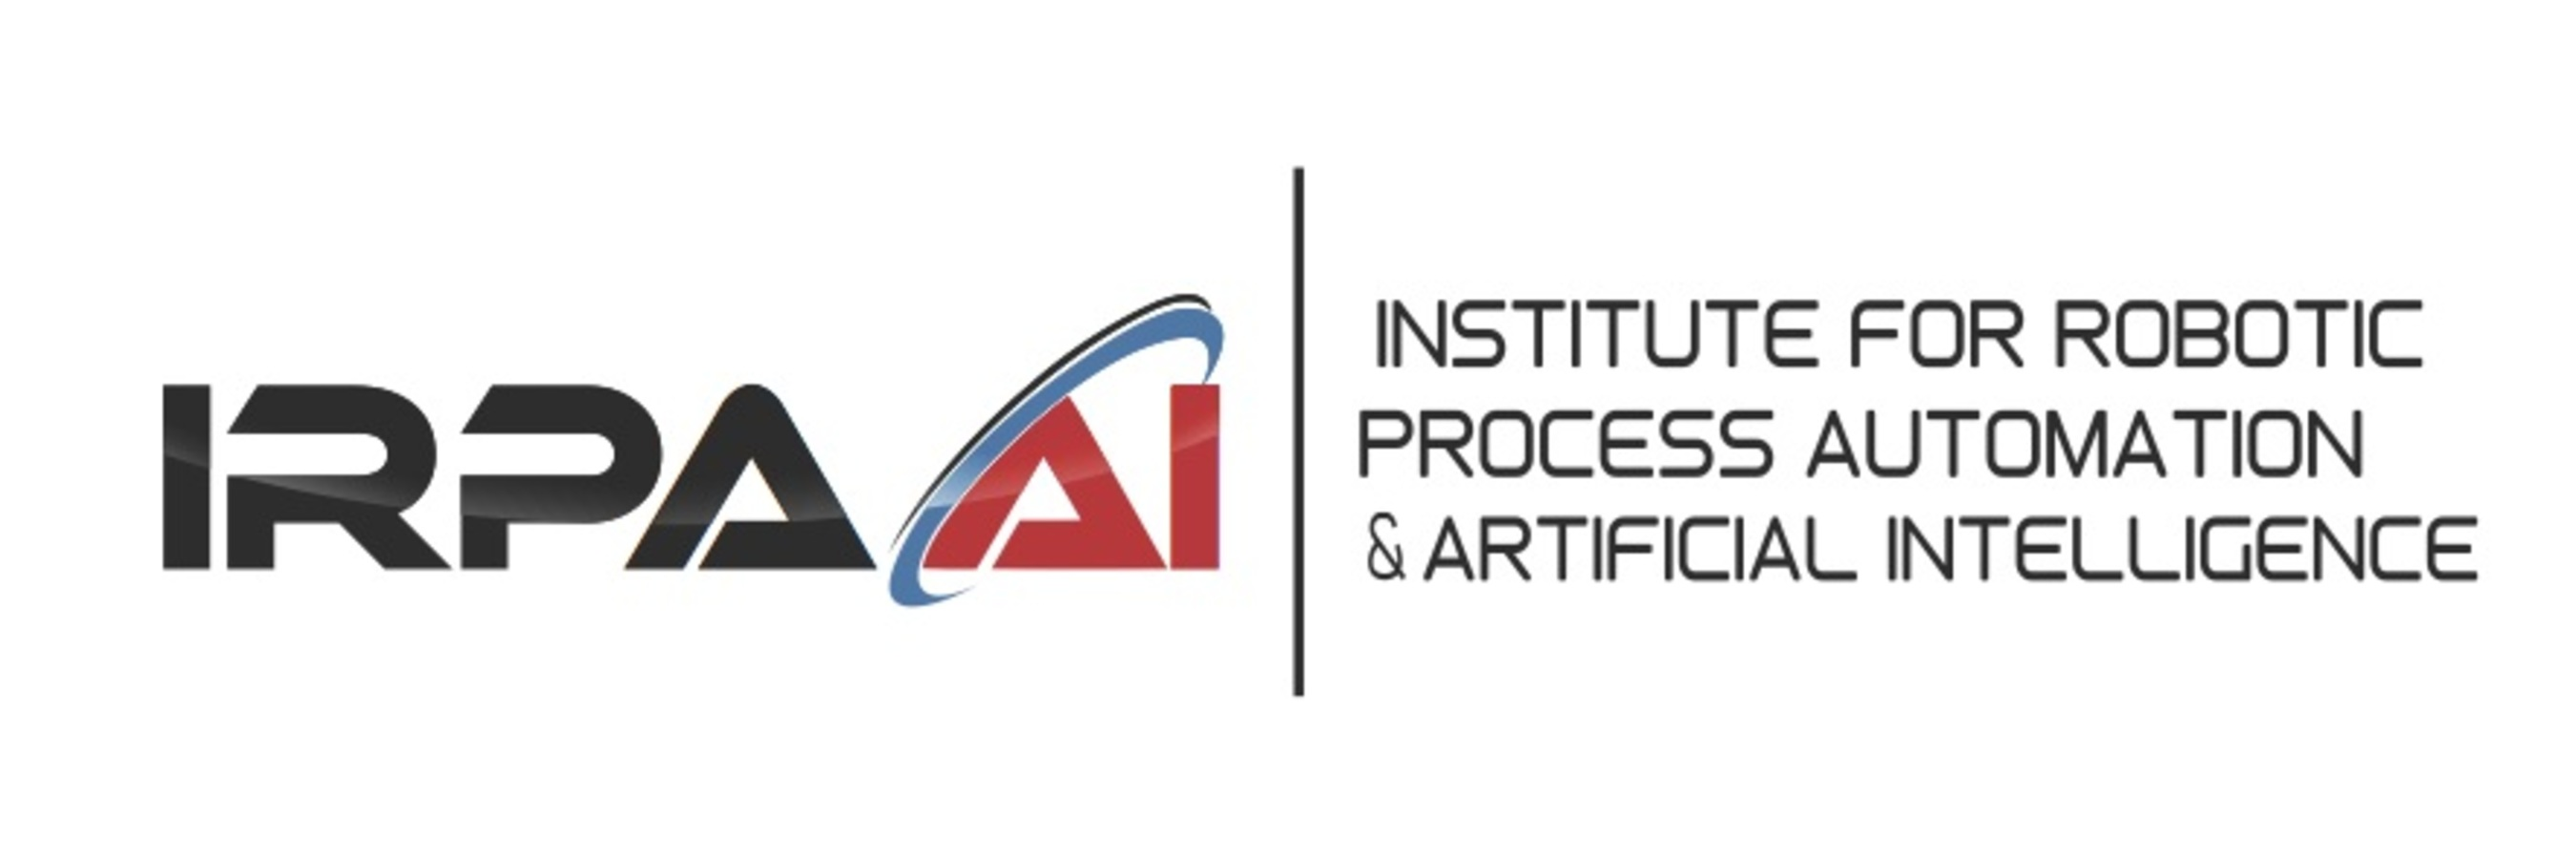 The Institute for Robotic Process Automation (IRPA) is an independent professional association and knowledge ...